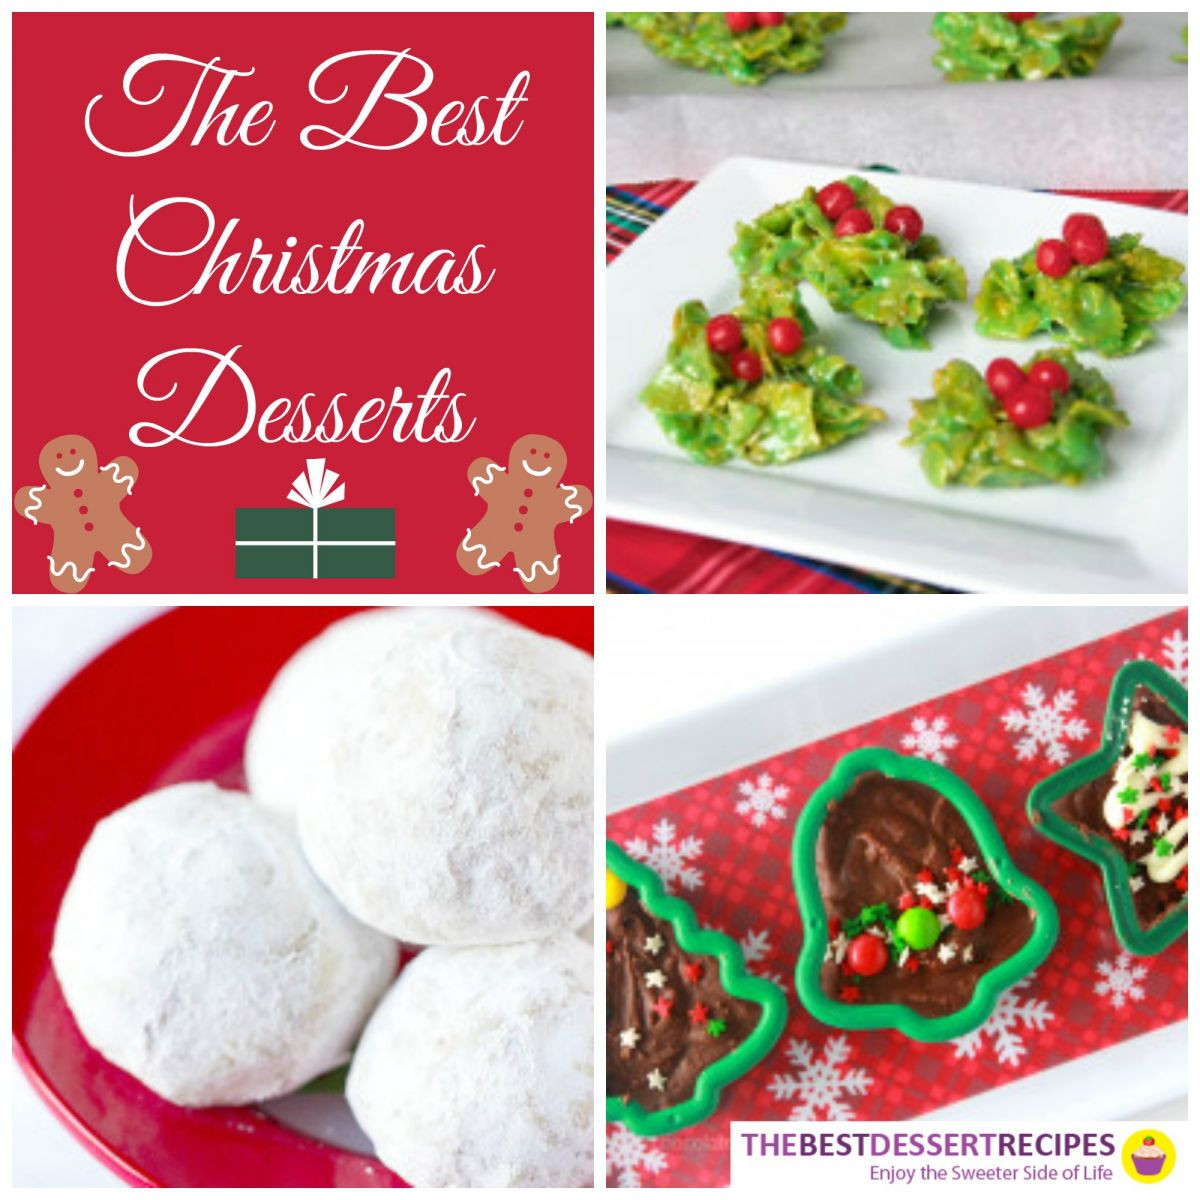 The Best Christmas Desserts  The Best Christmas Desserts 75 Recipes for Christmas